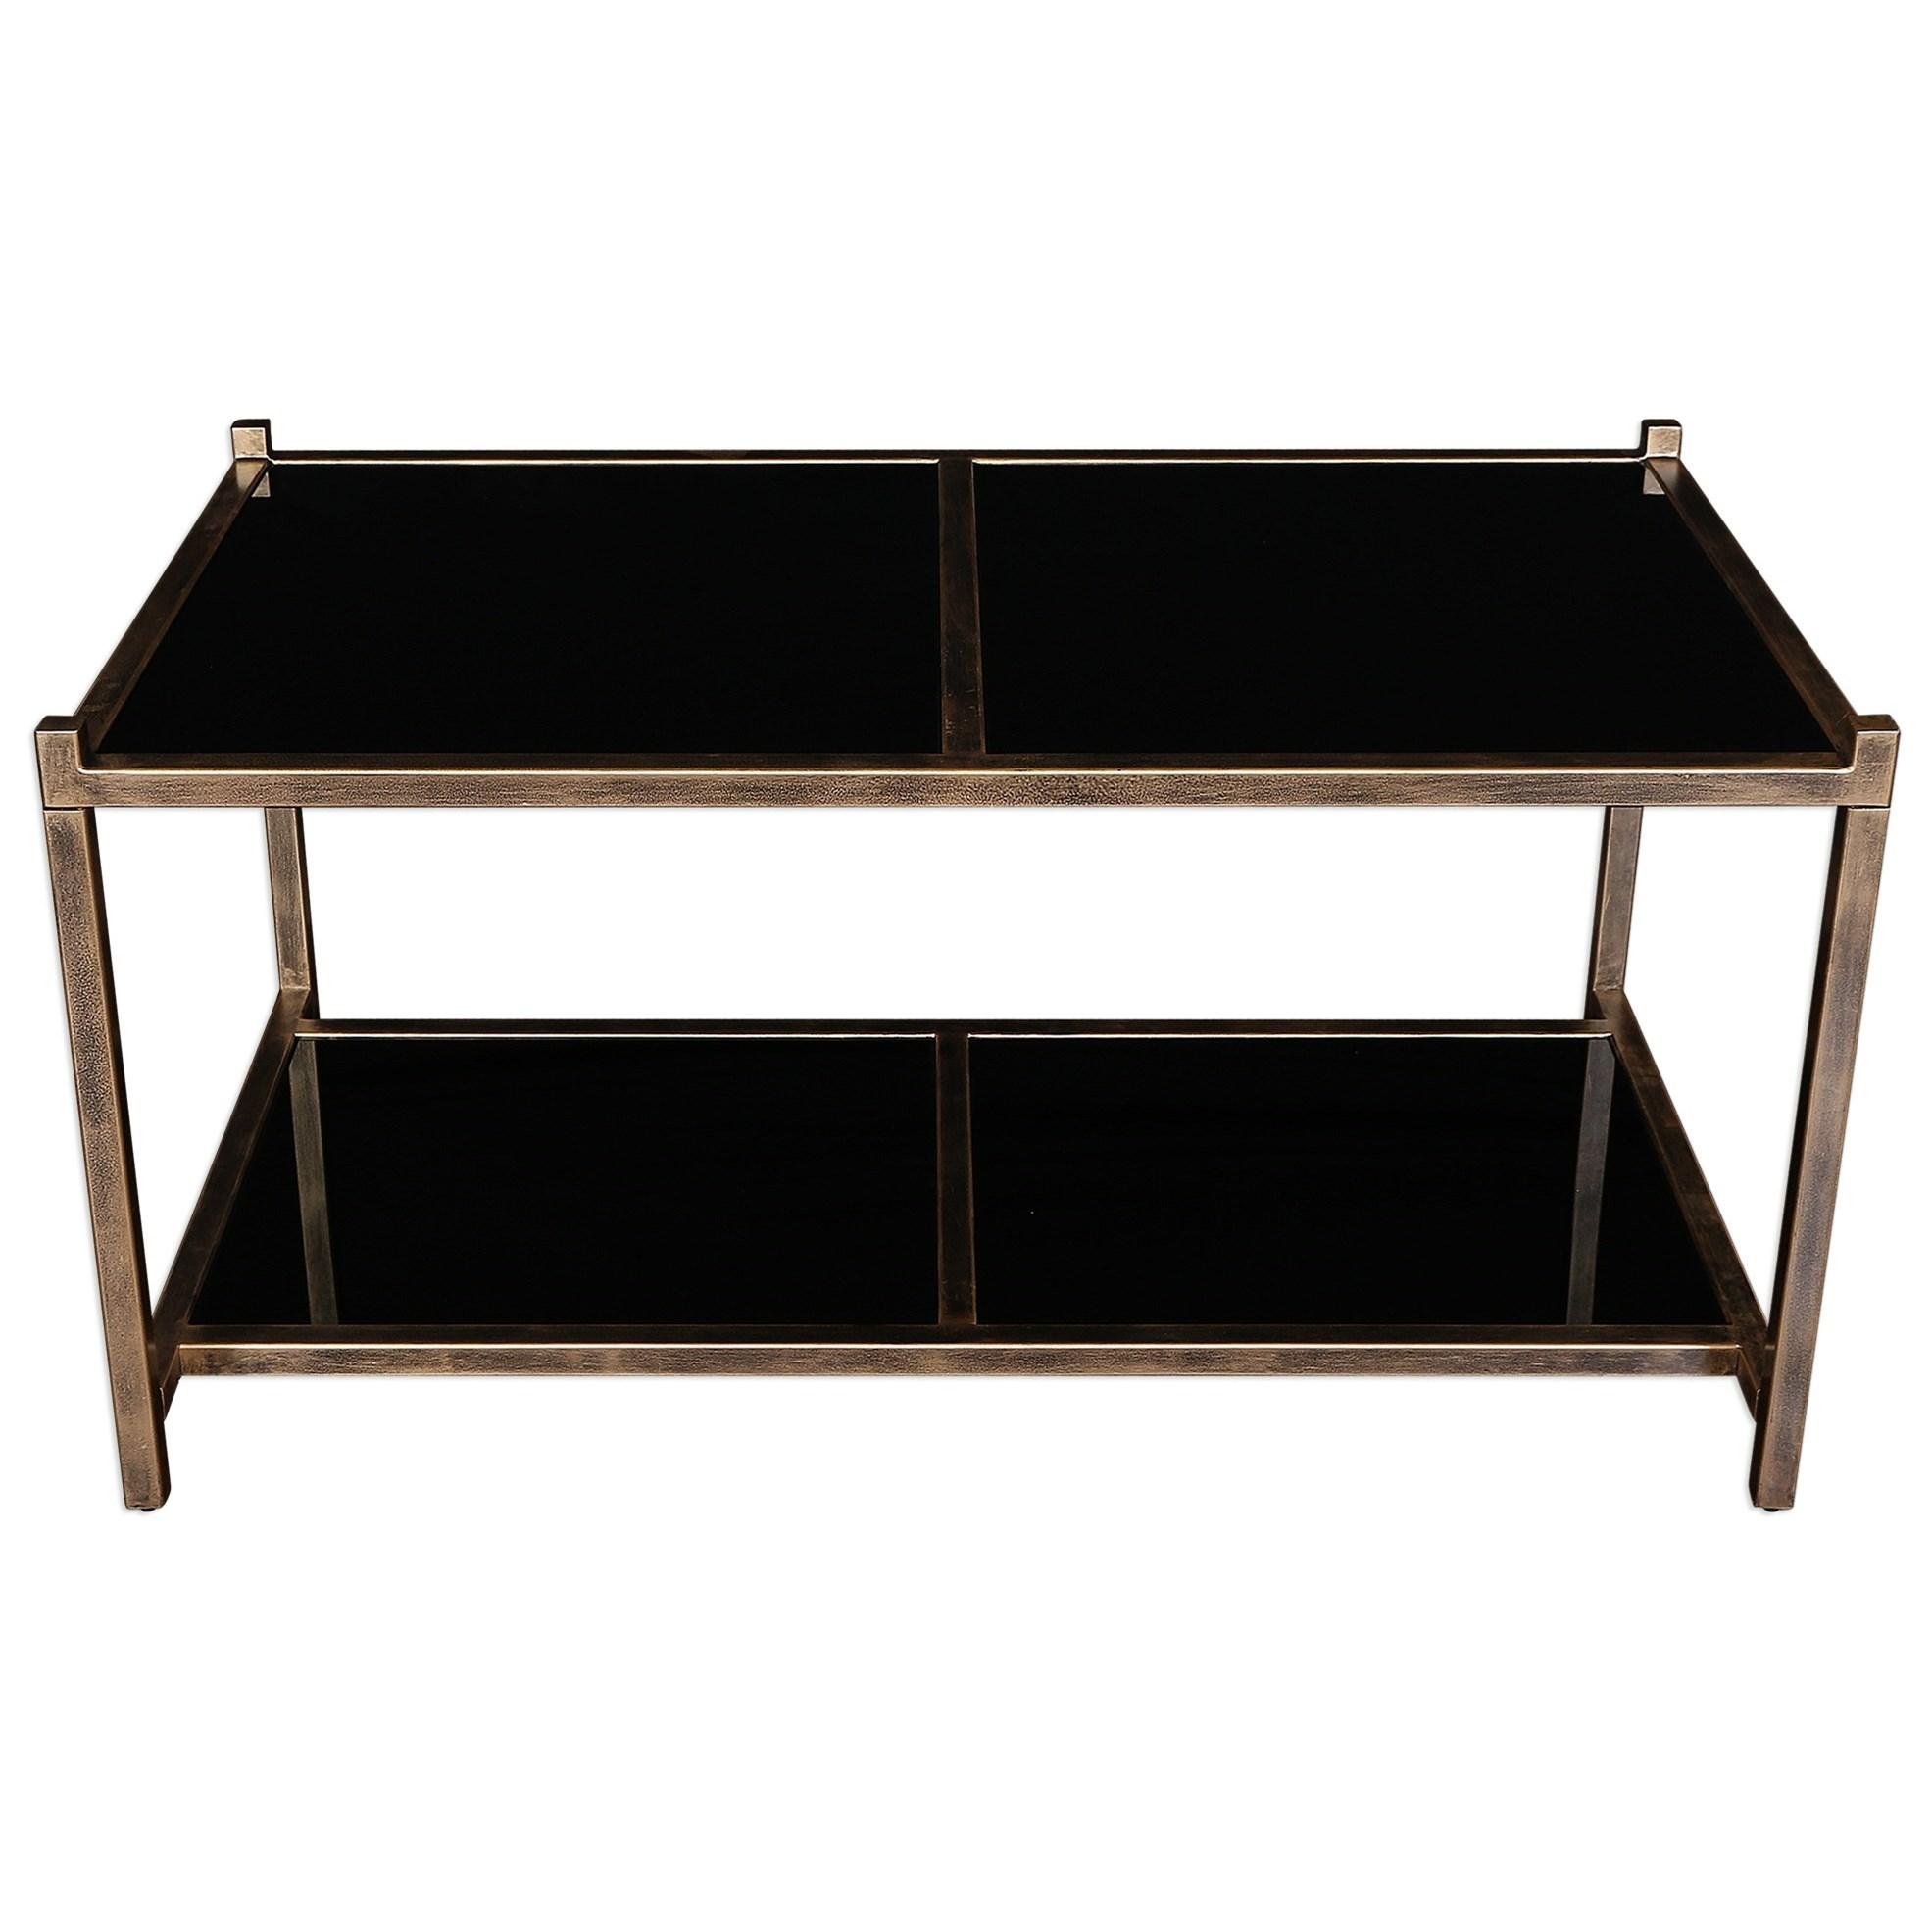 Uttermost Accent Furniture  Karol Black Glass Coffee Table - Item Number: 25018